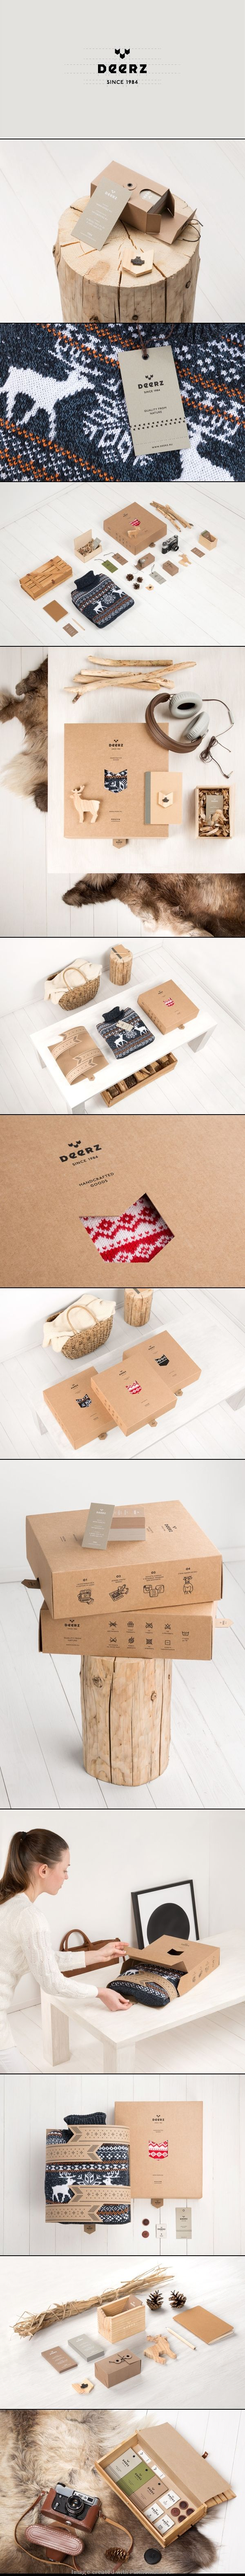 #Identity #Packaging #Branding #Graphic #Design